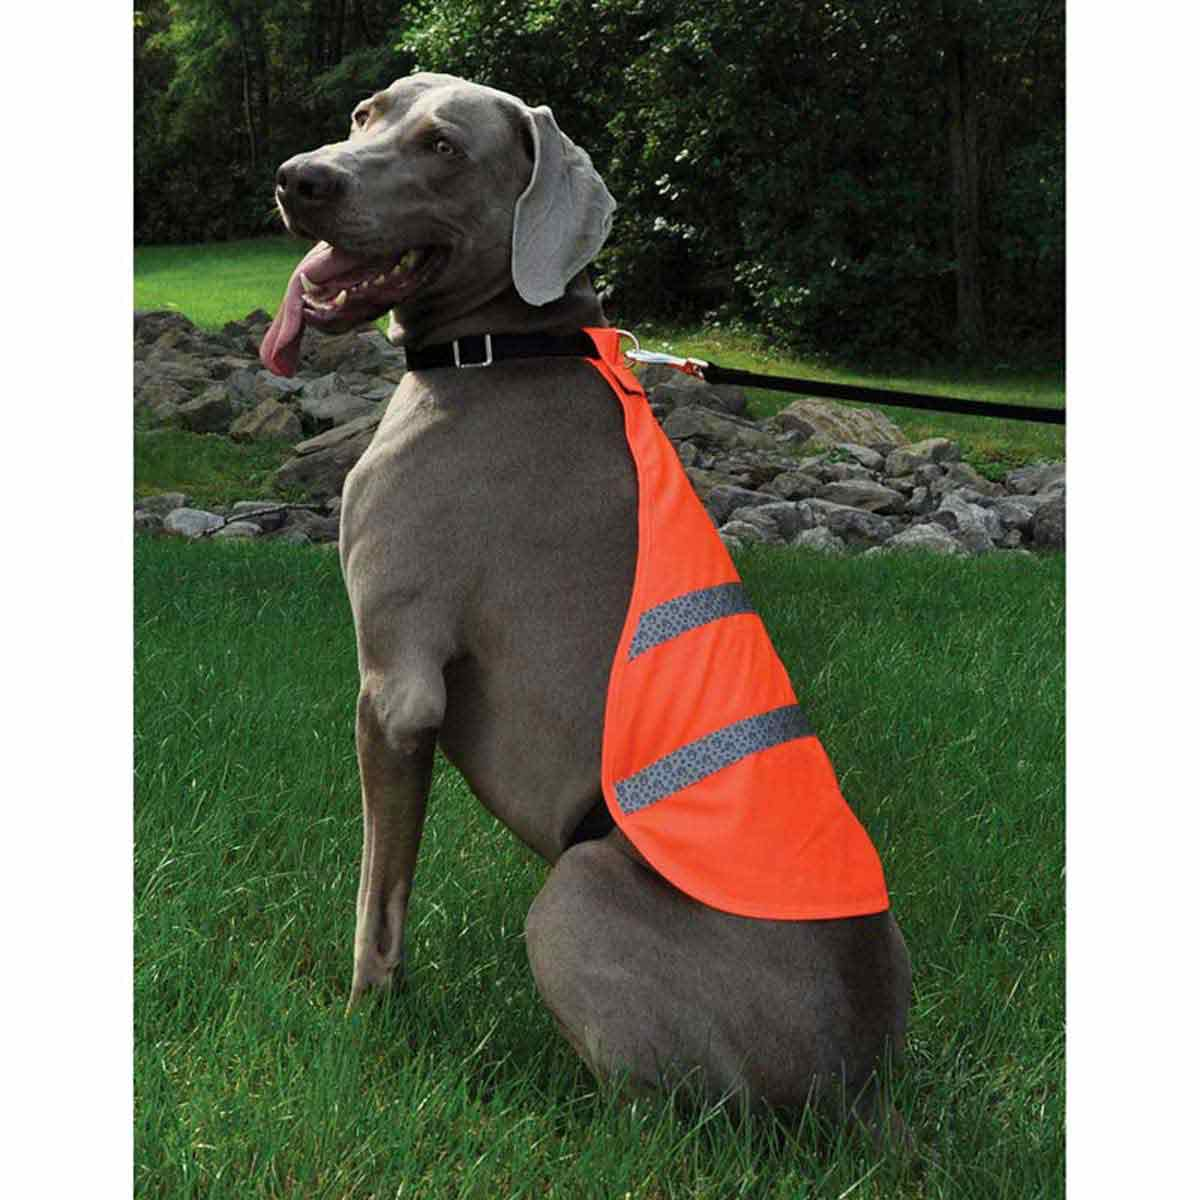 Coastal Reflective Dog Safety Vest for Small Dogs Up to 18 lbs